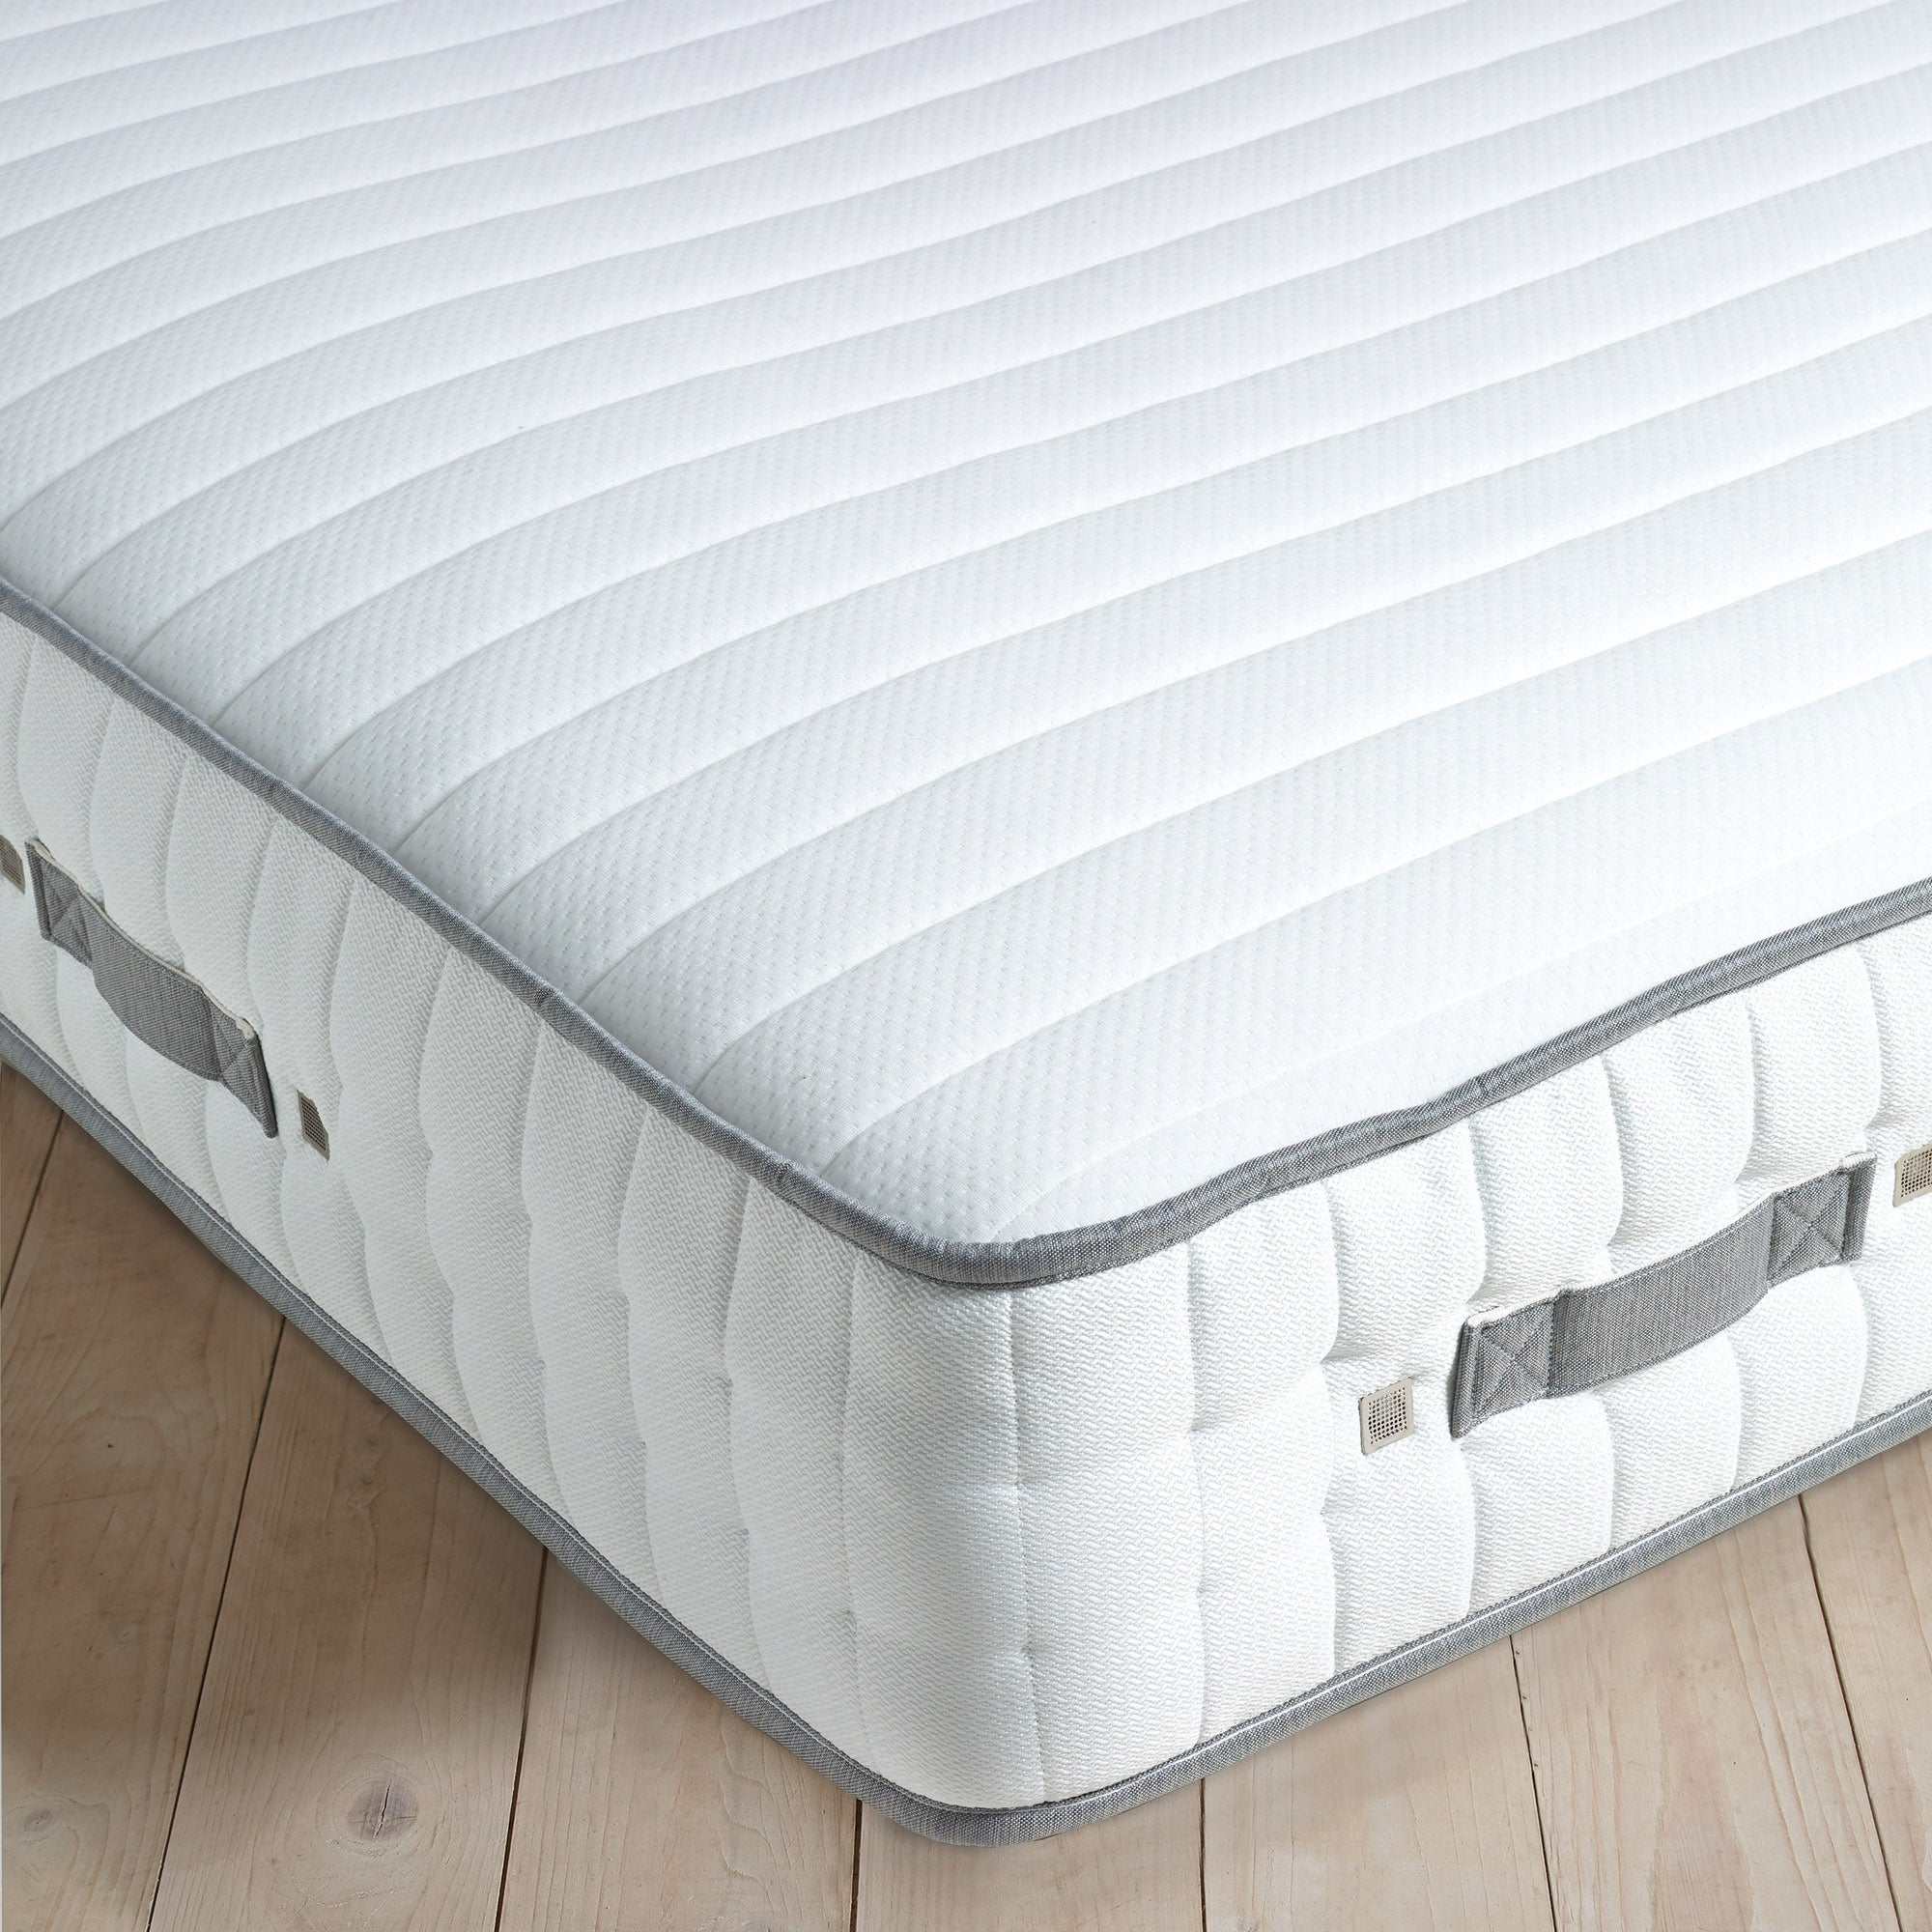 Image of Hotel 2000 Luxury Memory Medium Mattress White